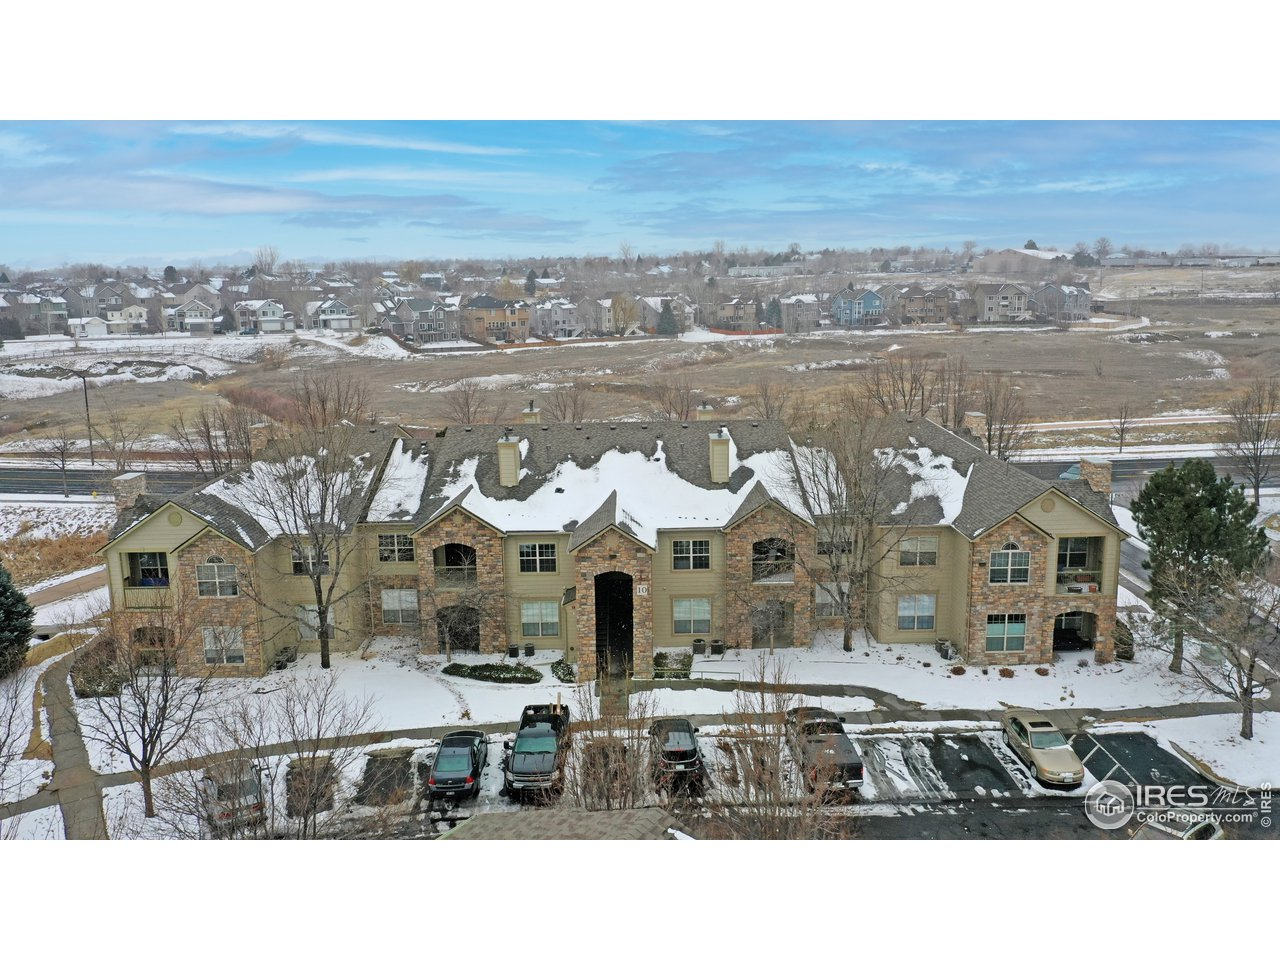 Fossil Creek Condos at their best!